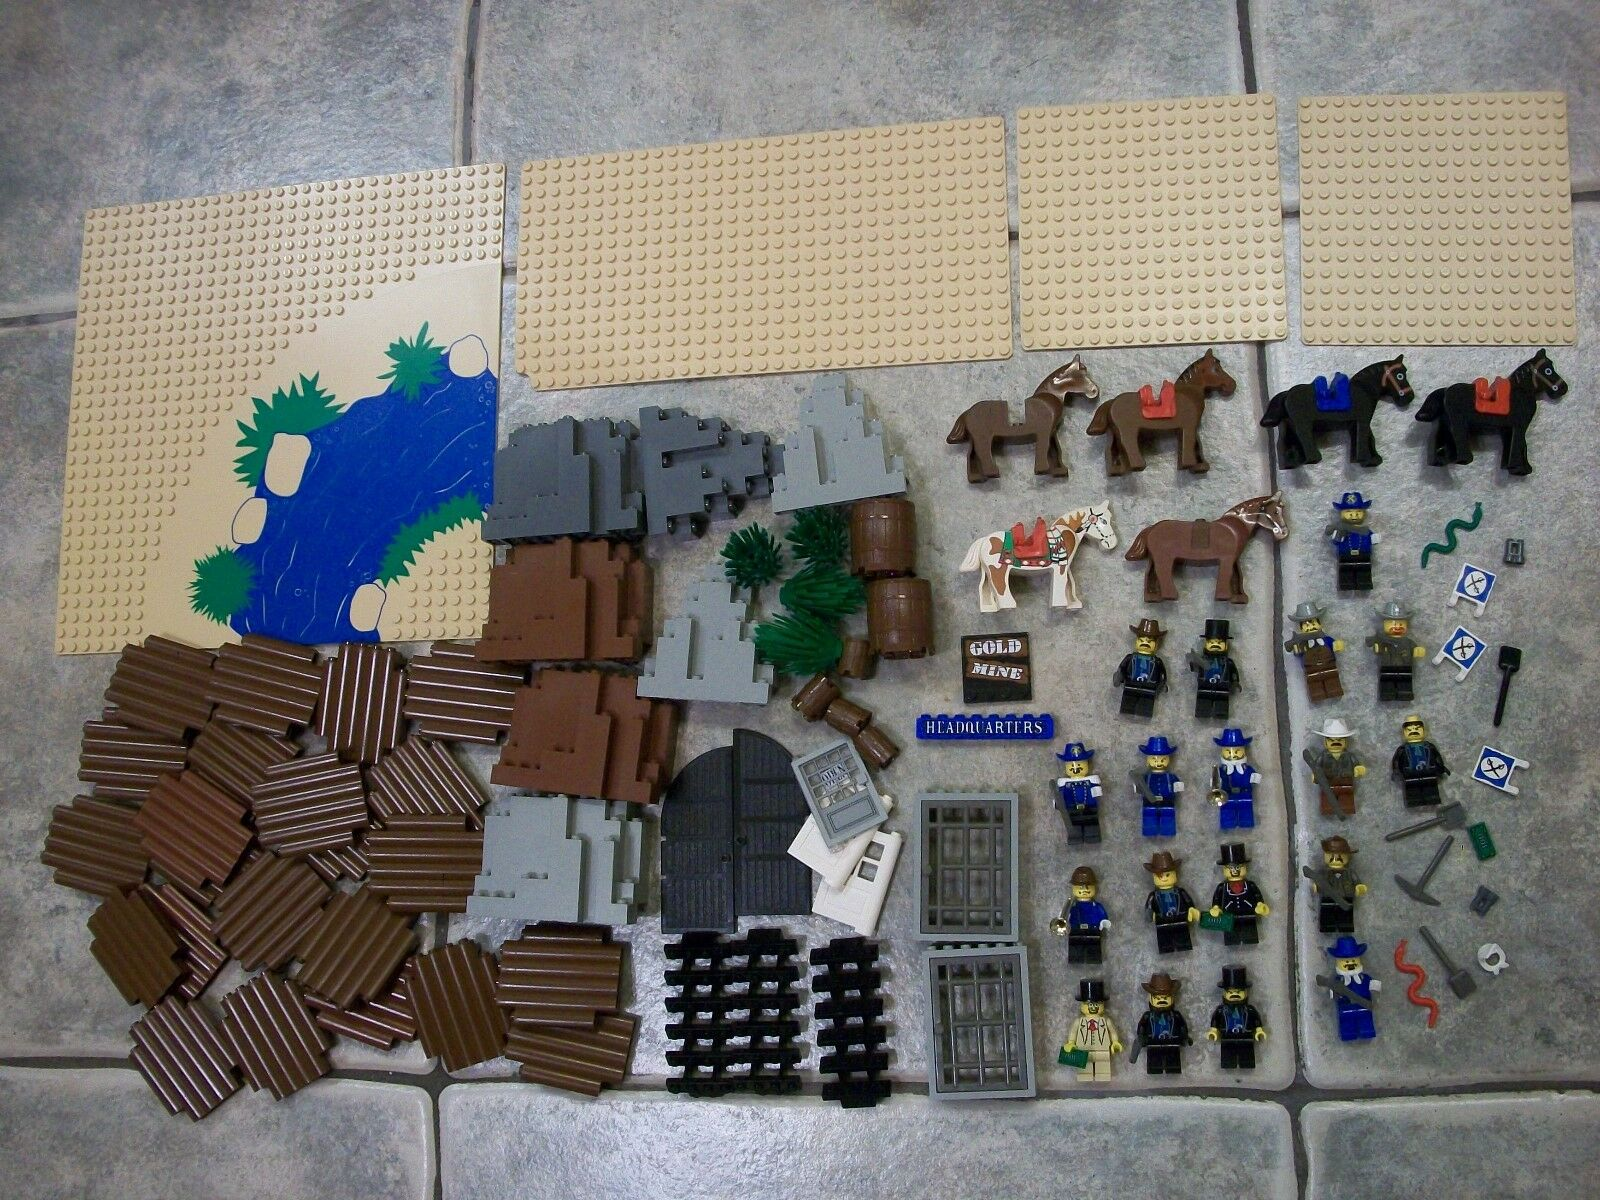 LEGO wild west mini figure piece LOT from 6769 6765 6764 6761 cavalry soldier s